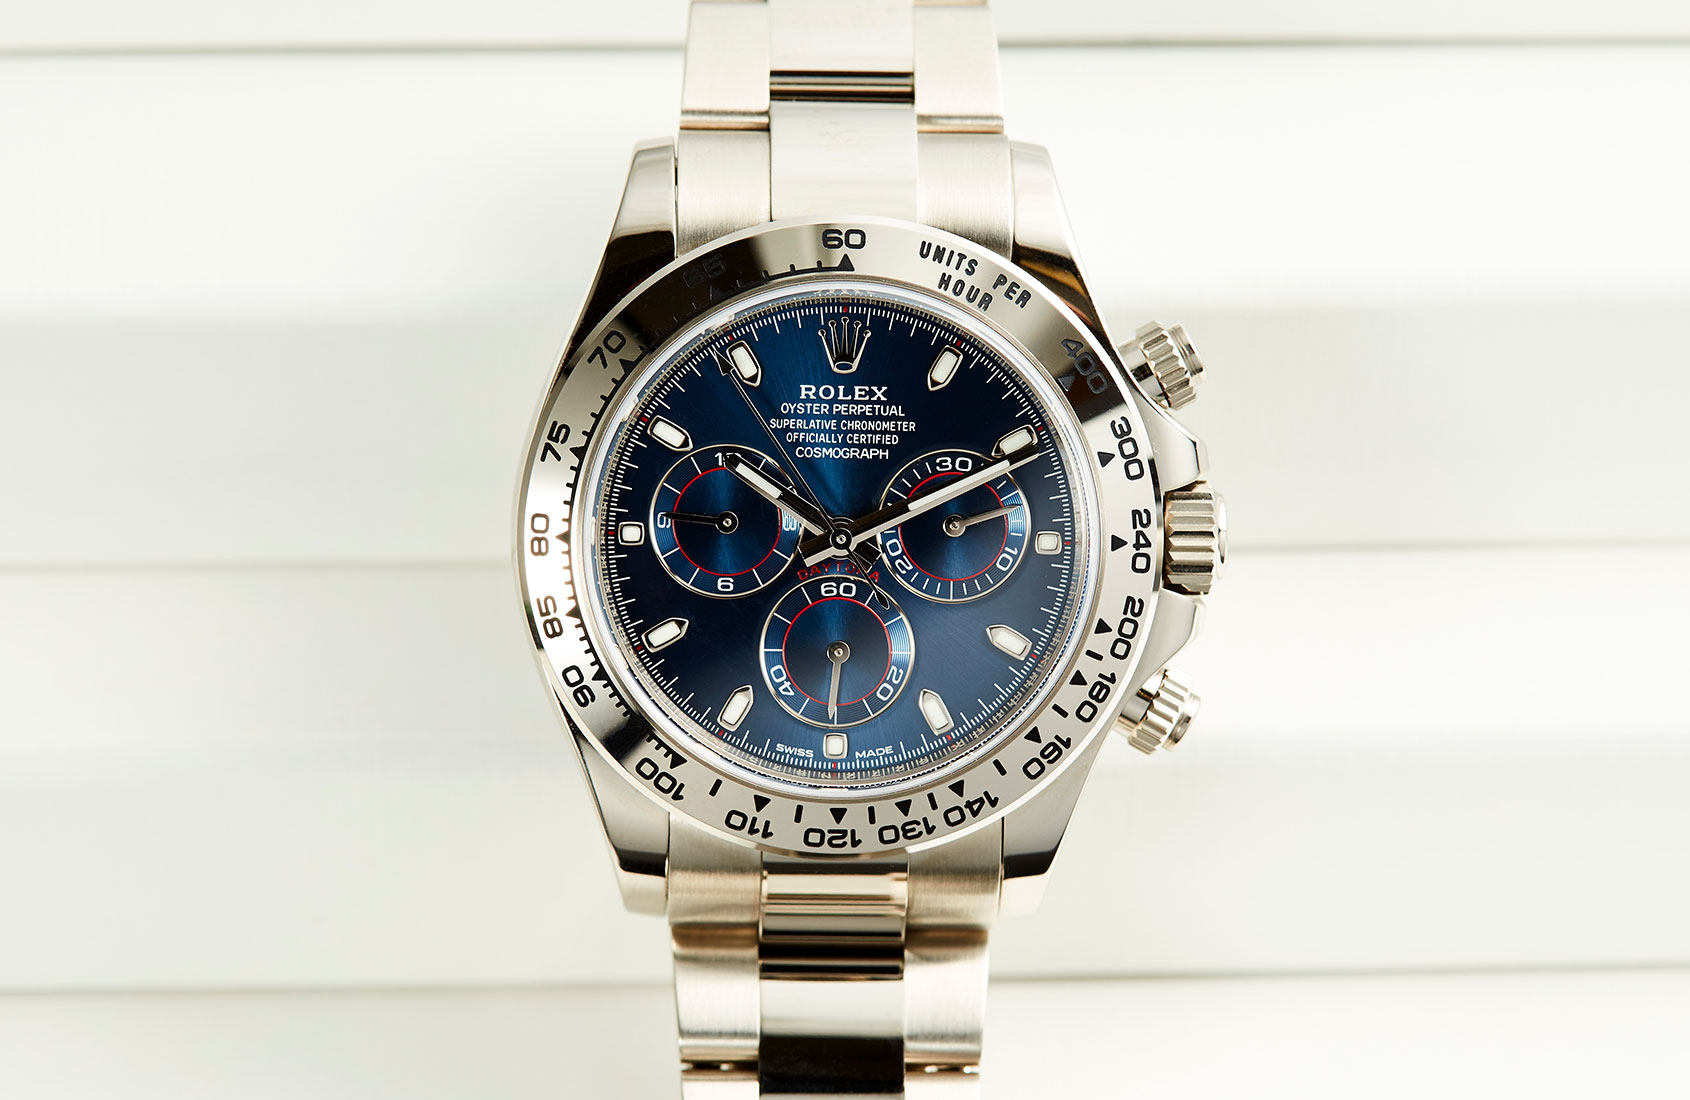 Rolex Daytona In White Gold With Blue Dial Ref 116509 Review